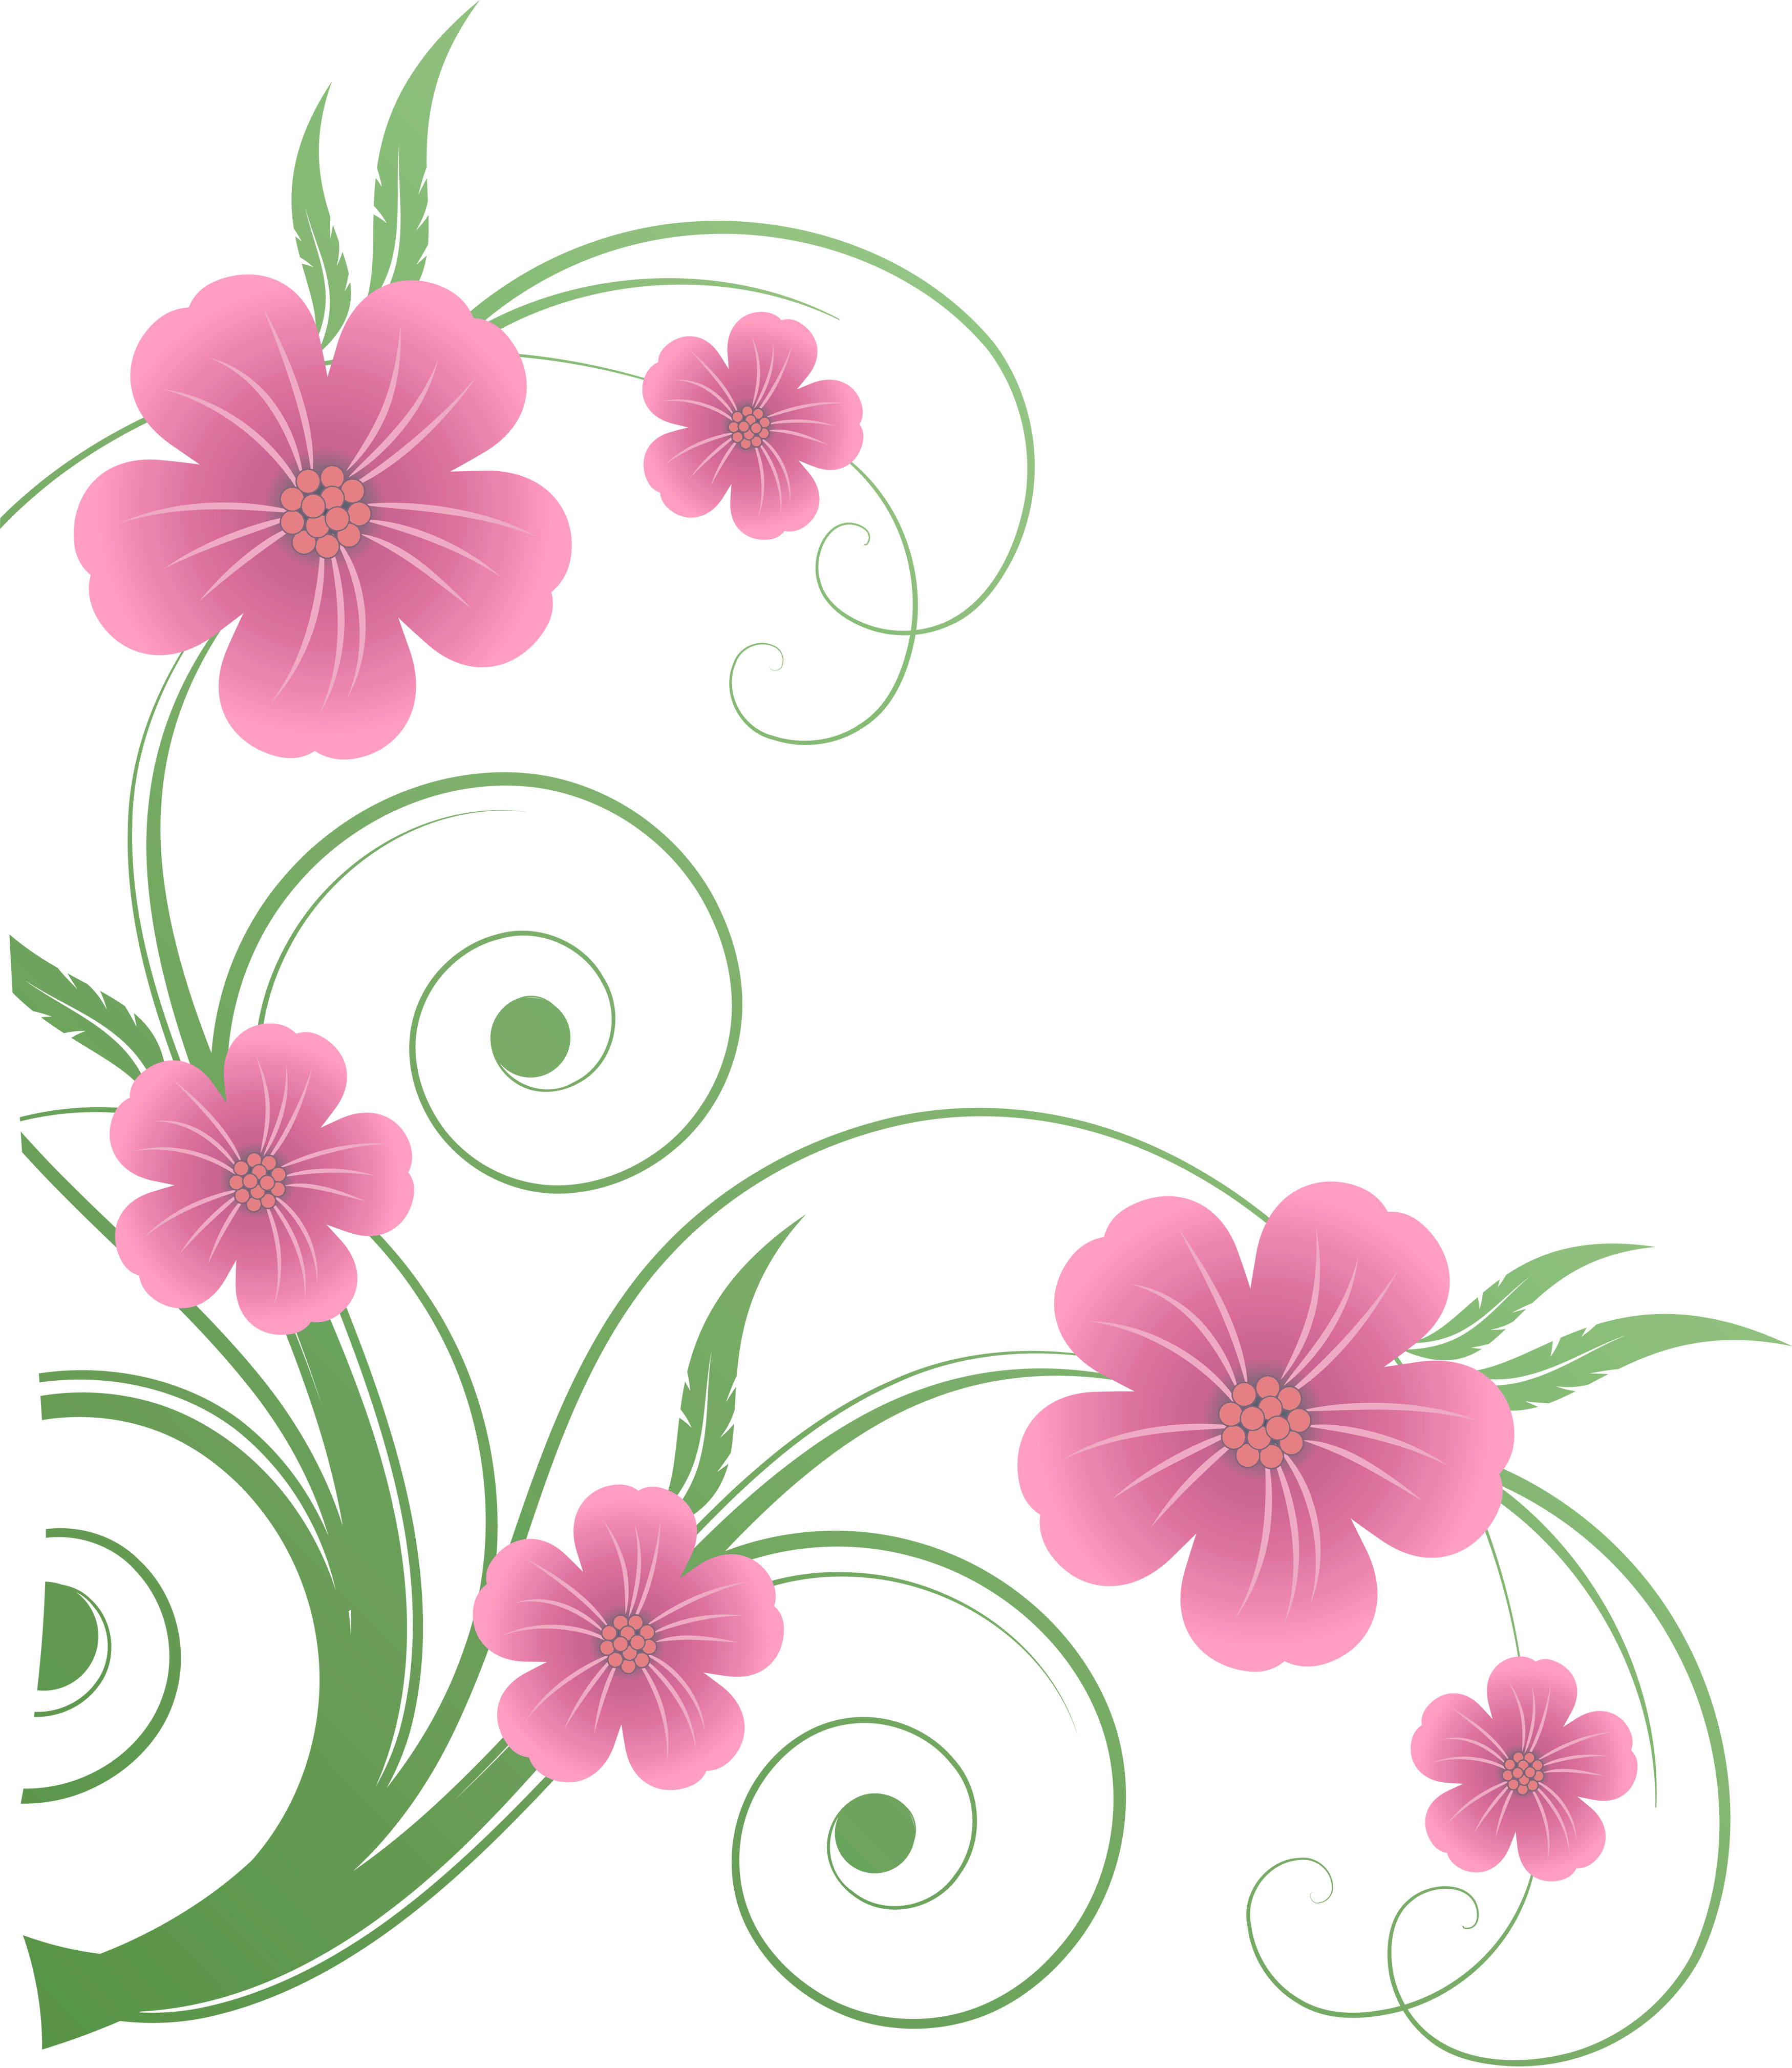 Flowers Png - ClipArt Best